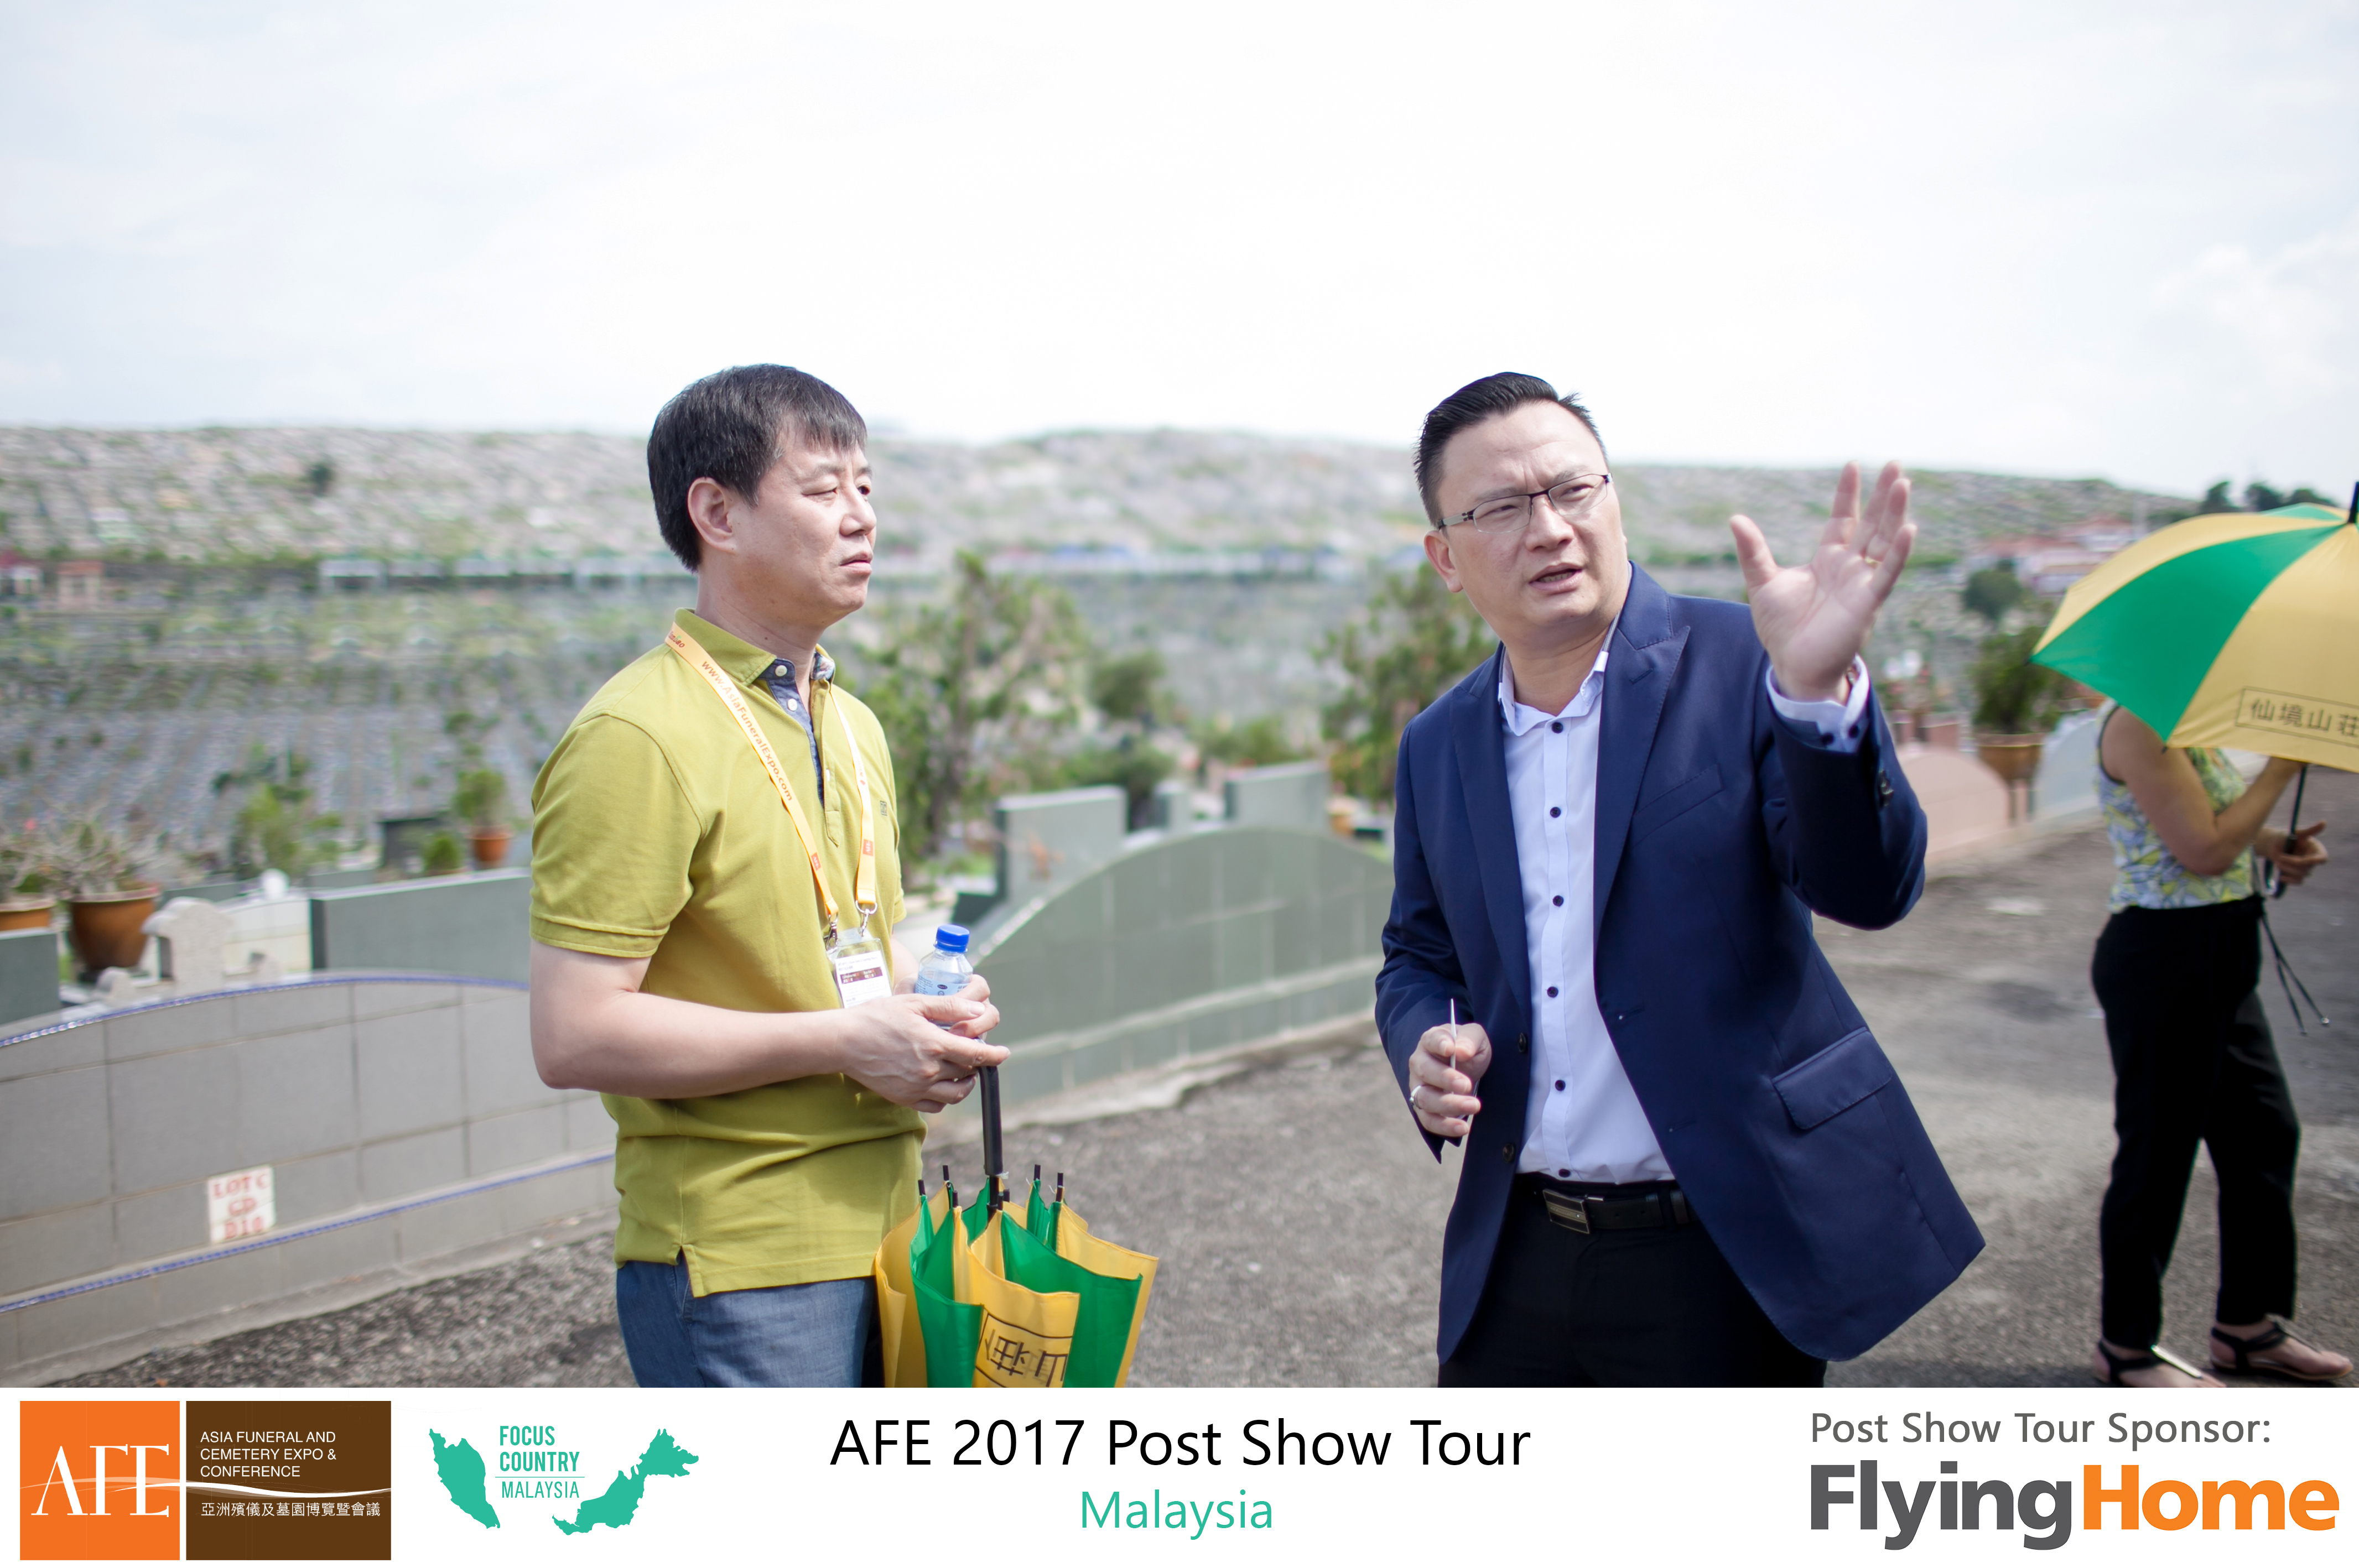 AFE Post Show Tour 2017 Day 4 - 38